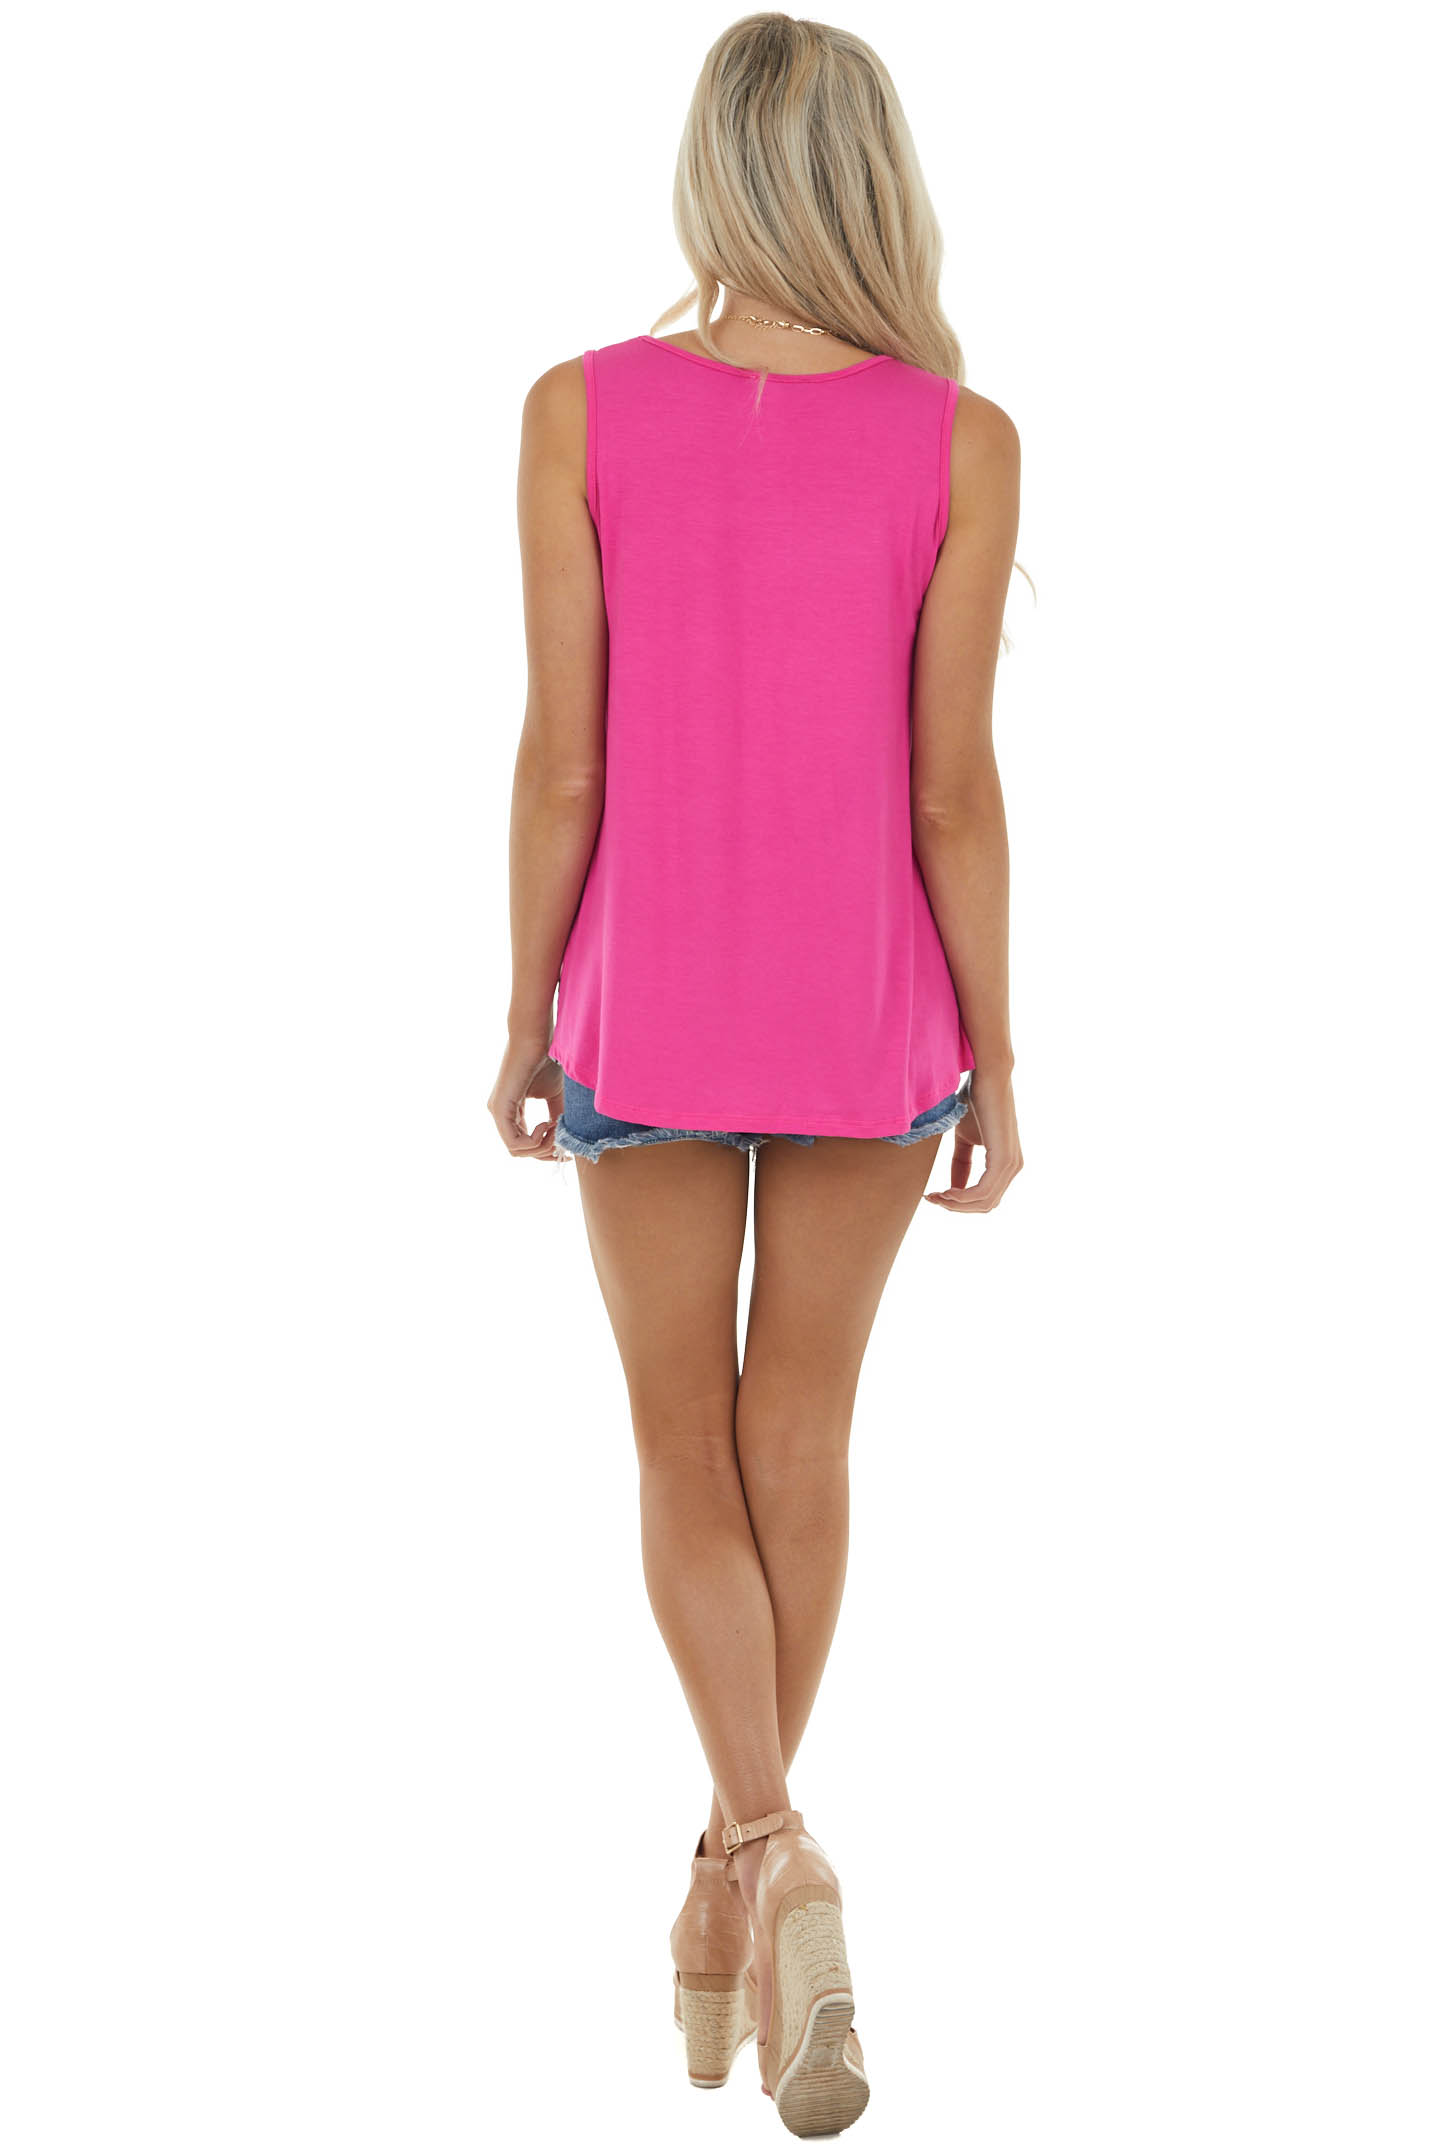 Magenta Sleeveless Stretchy Knit Top with Contrasting Prints